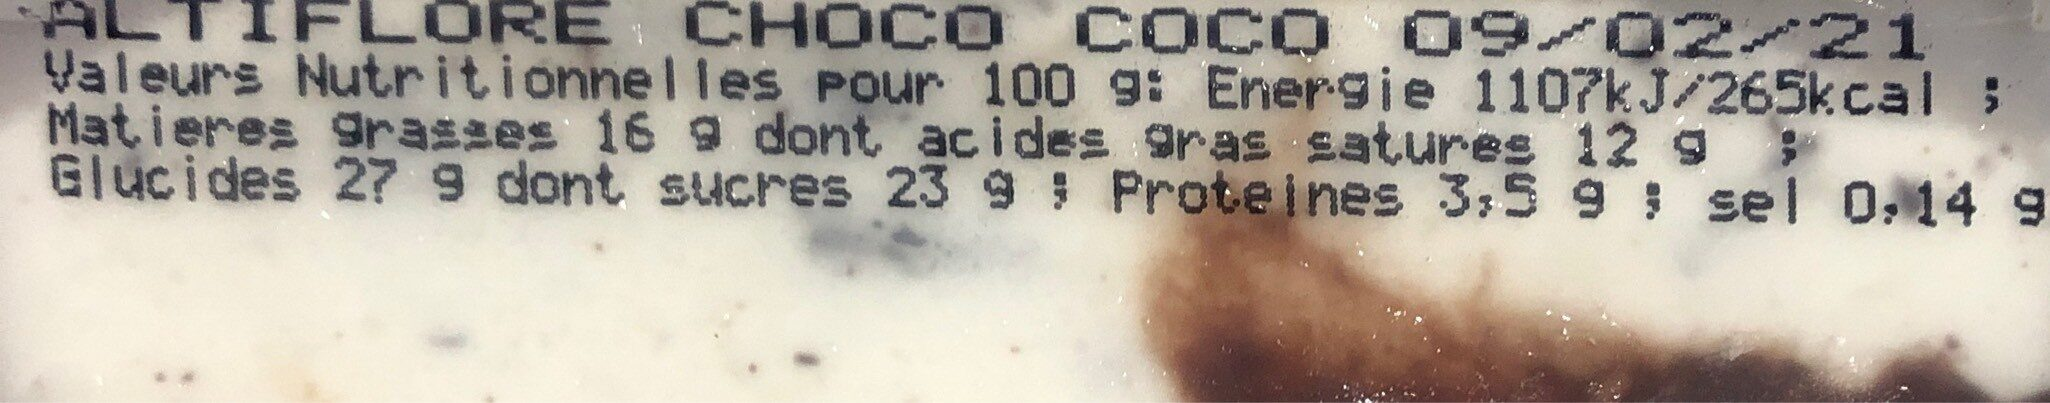 Glace Choco coco - Informations nutritionnelles - fr